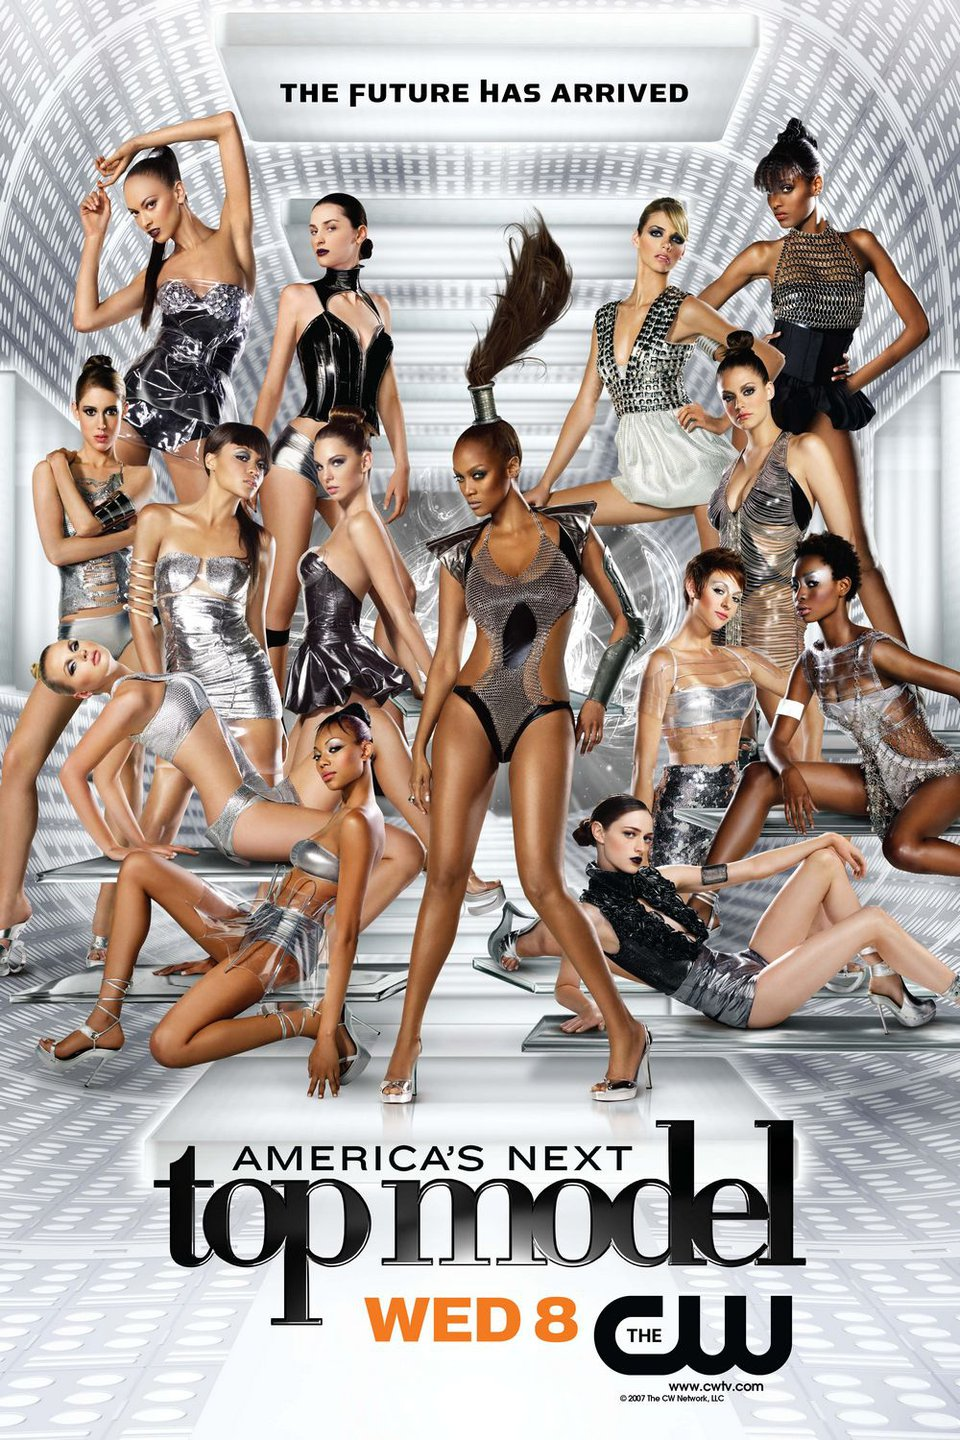 photograph of the cast of Cycle 9 of America's Next Top Model